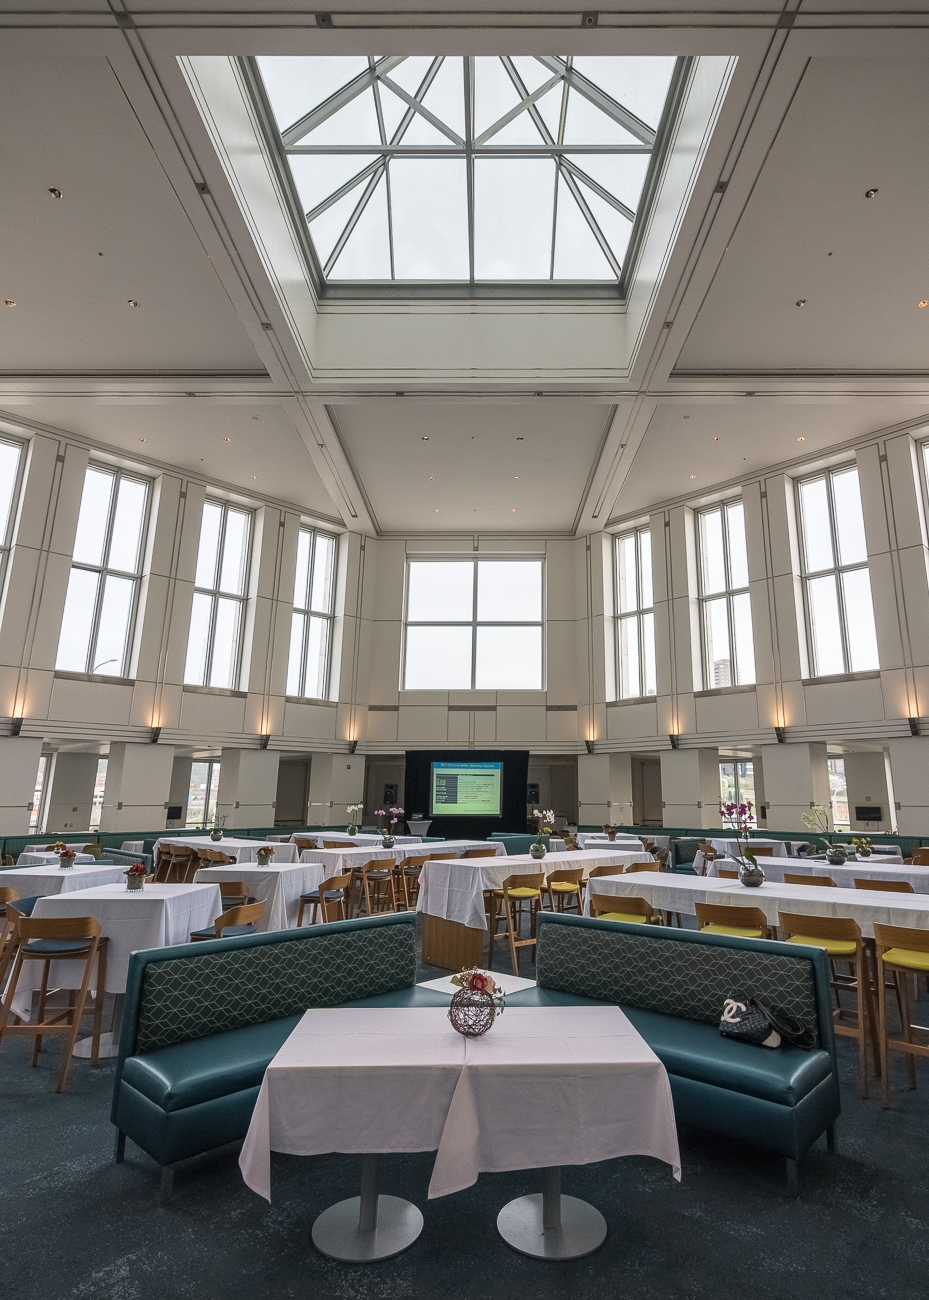 The cafeteria inside P&G is spacious with a skylit atrium. / Image: Phil Armstrong, Cincinnati Refined // Published: 5.7.18